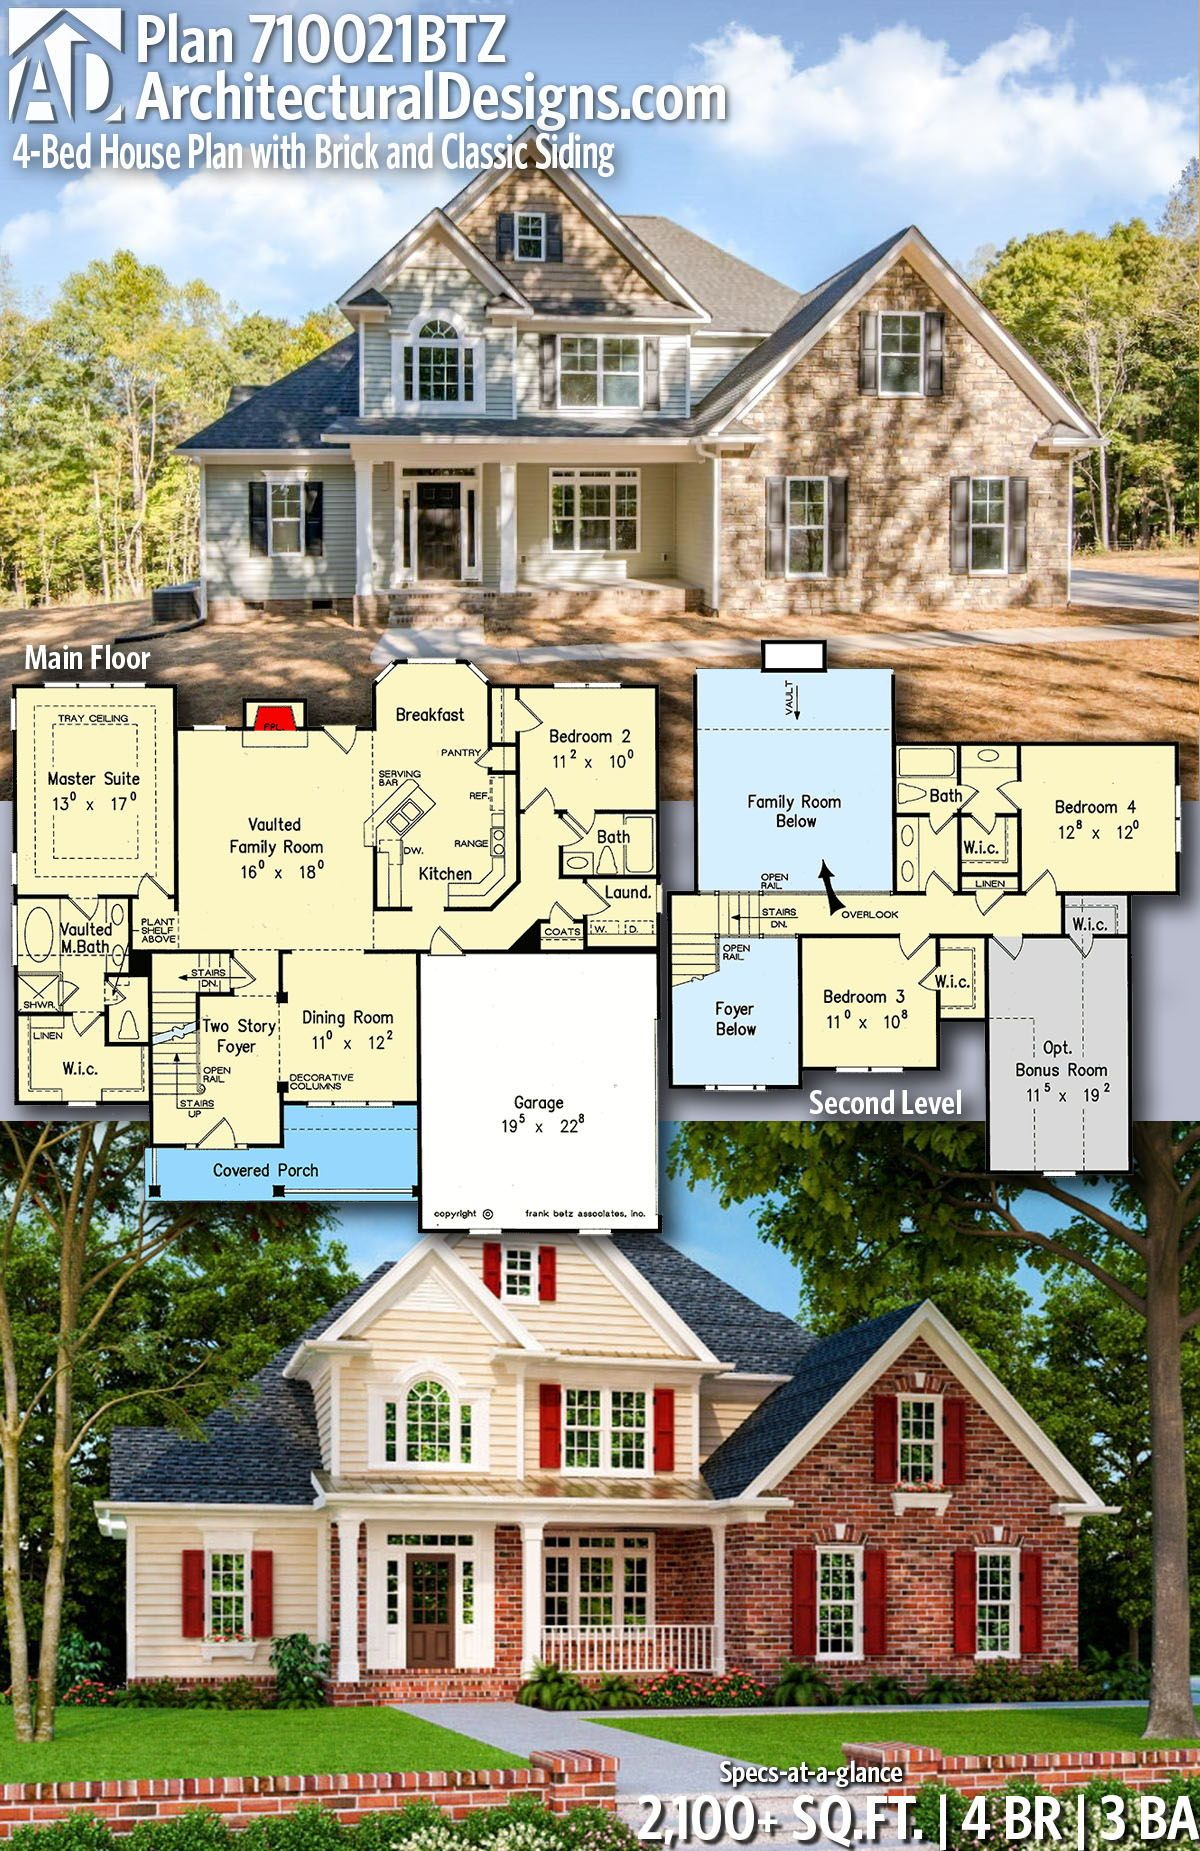 Plan 710021btz 4 Bed House Plan With Brick And Classic Siding New House Plans House Plans Dream House Plans